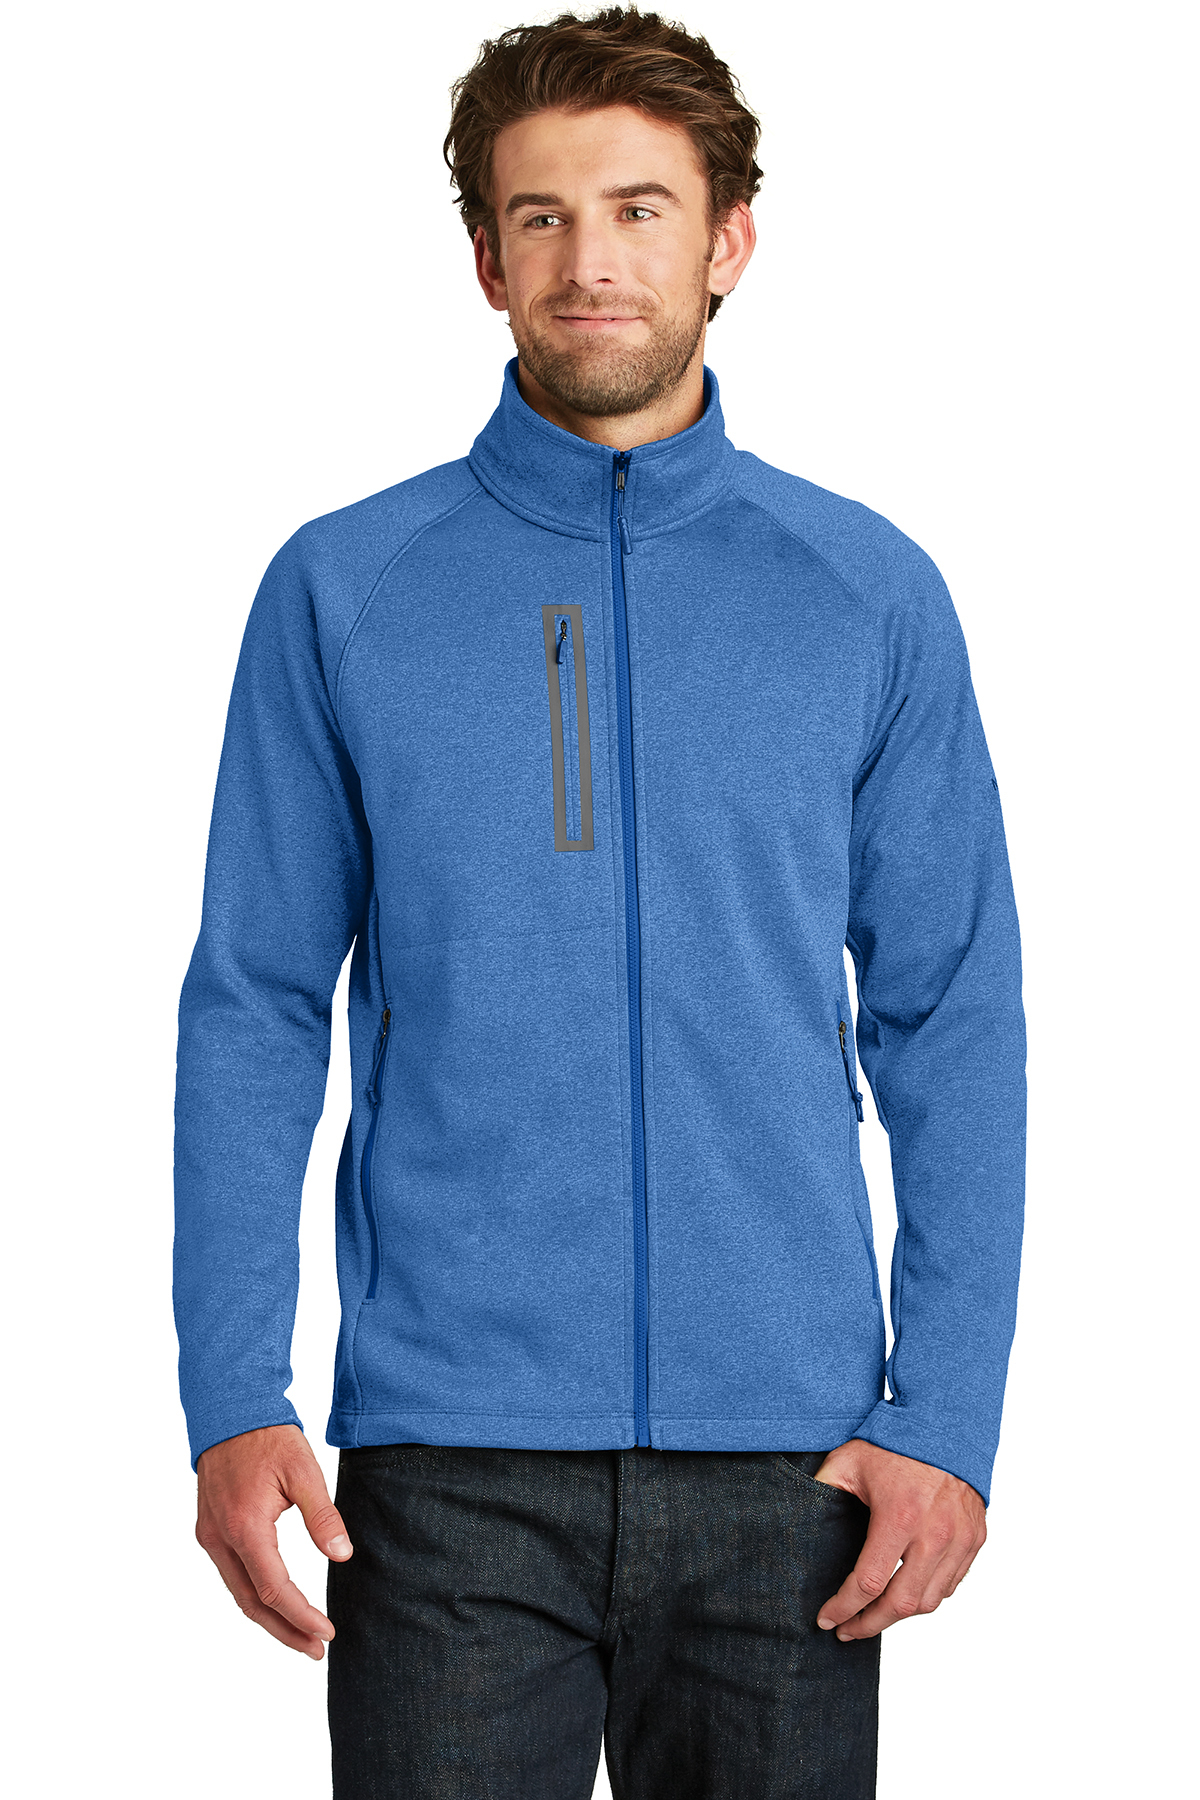 93685f5a8 The North Face® Canyon Flats Fleece Jacket | Corporate Jackets ...